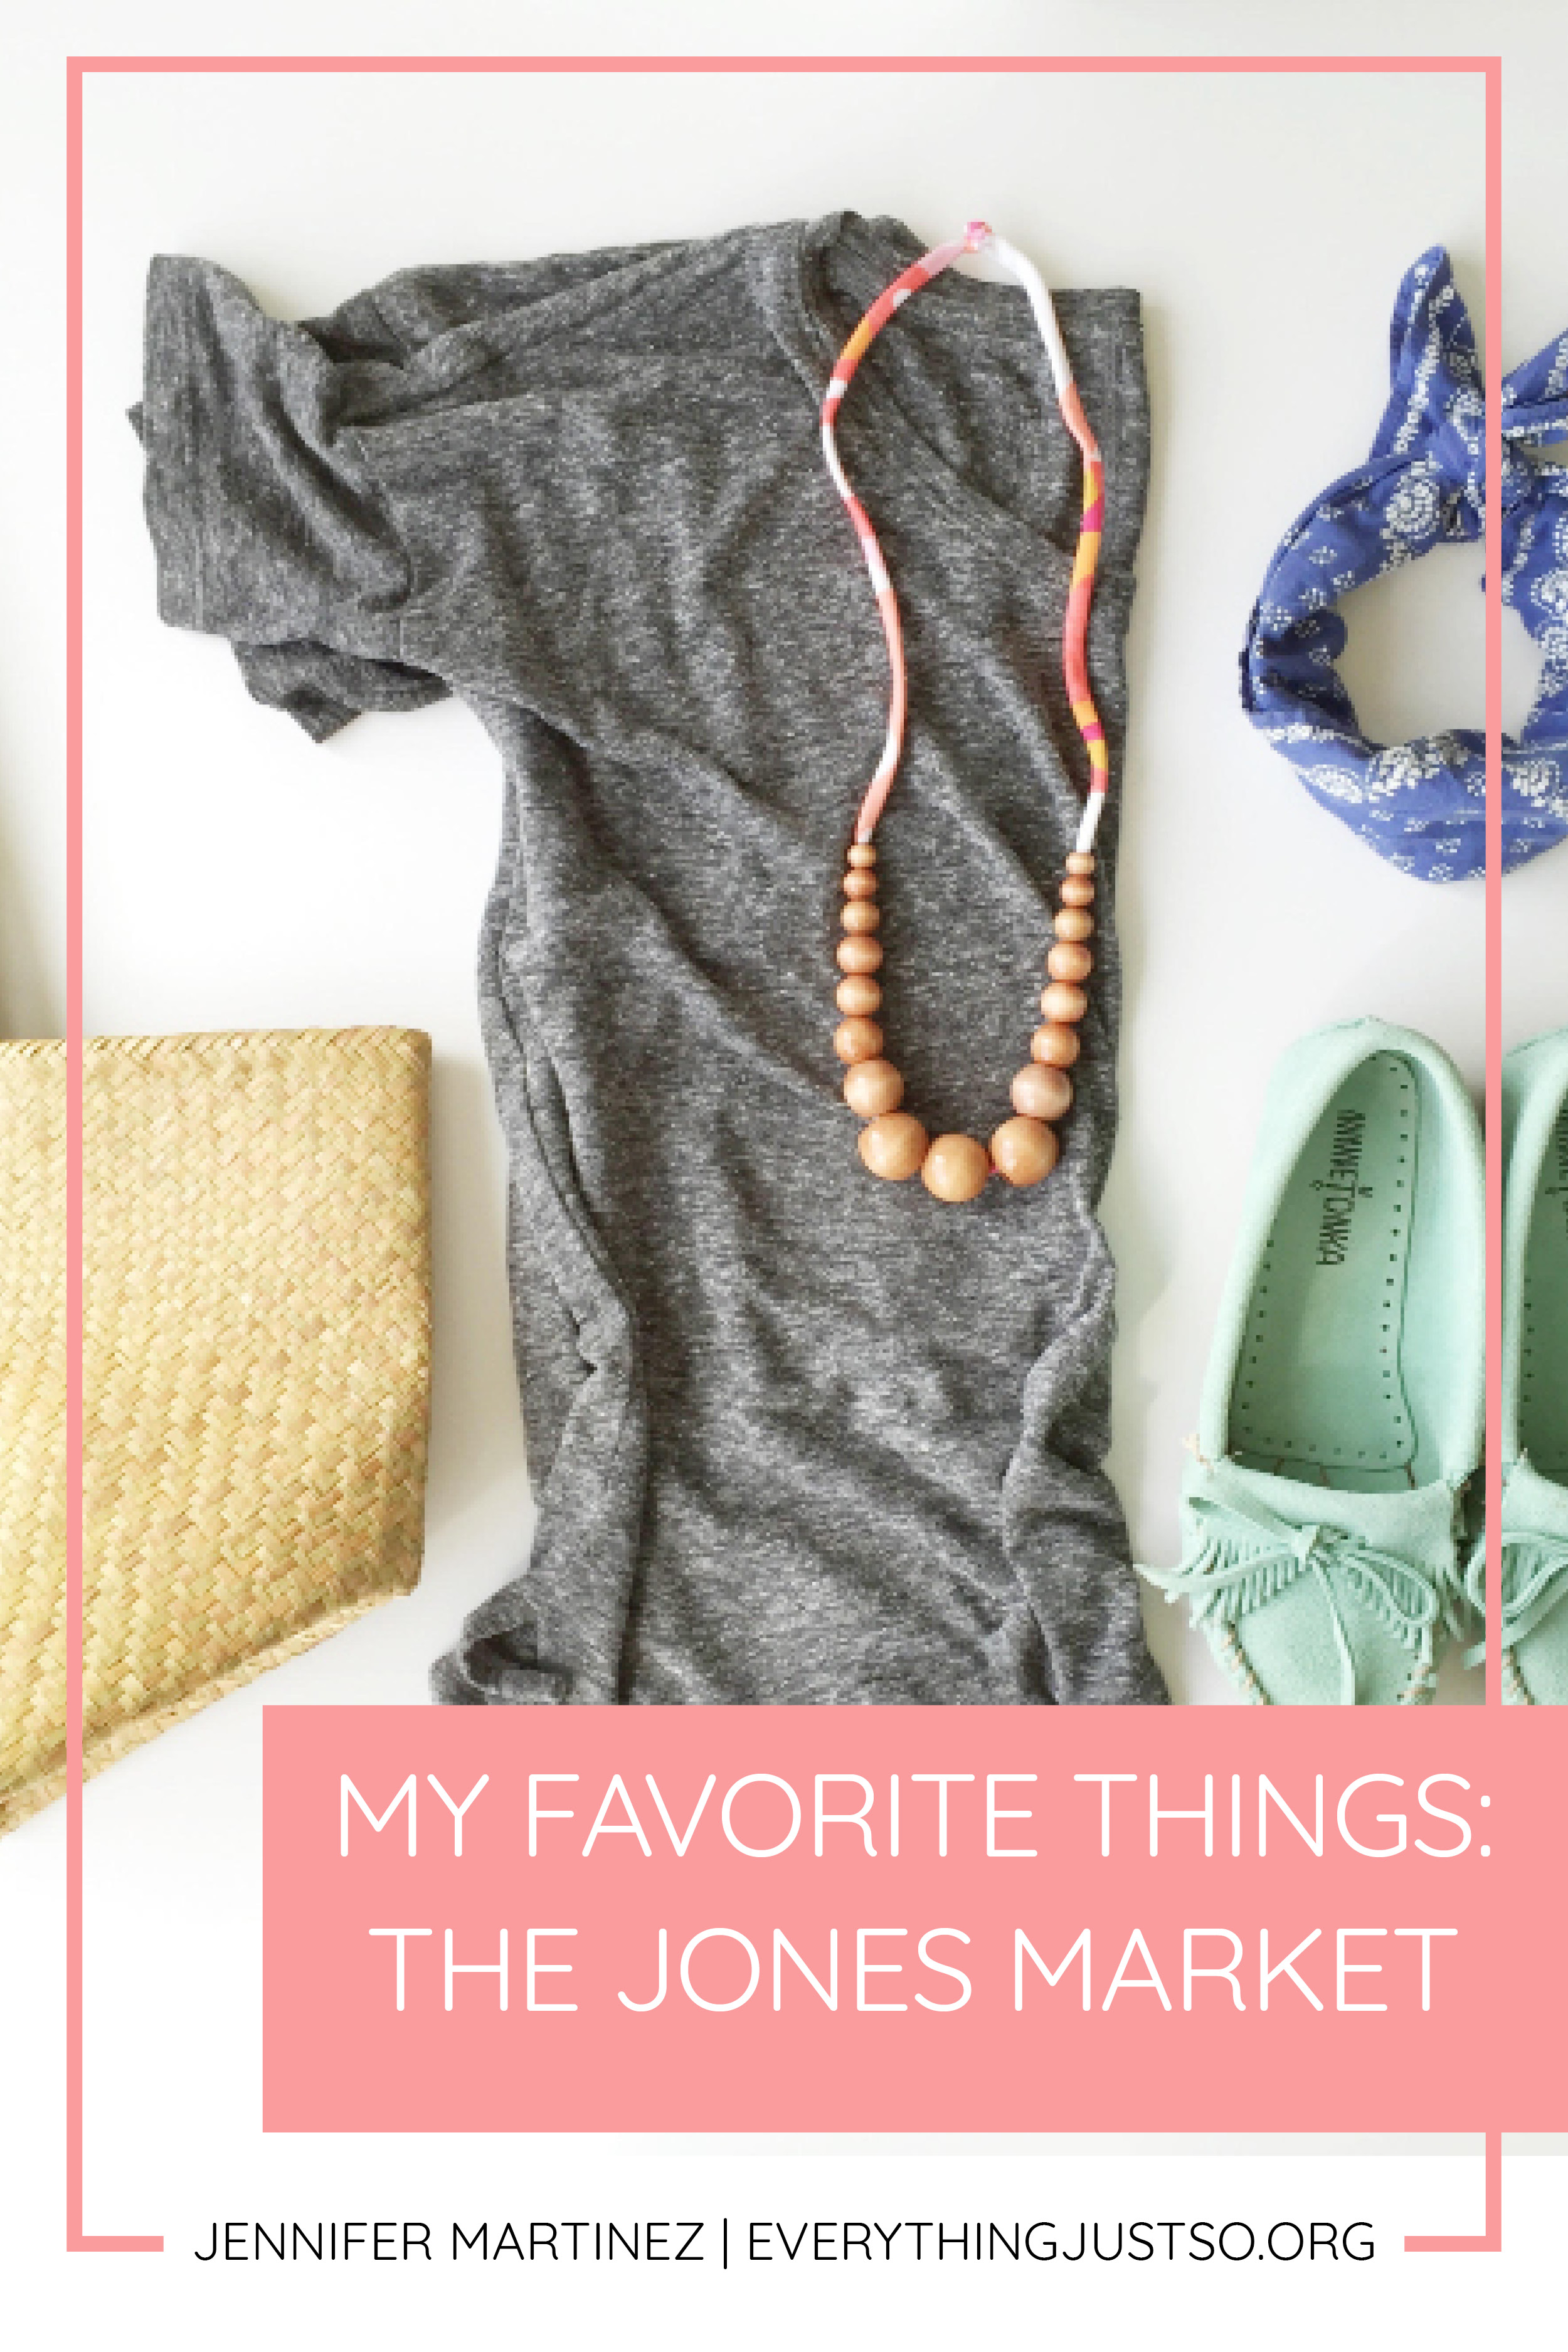 The One Flexible Necklace You Need as a Teacher | Stay cute and safe with these fun, flexible necklaces from The Jones Market. Part of my Teacher Appreciation Week Series on My Favorite Things. Win some of my favorite teacher things including teaching resources for your classroom. | everythingjustso.org #upperelementary #thejonesmarket #flexiblenecklace #teacherapparel